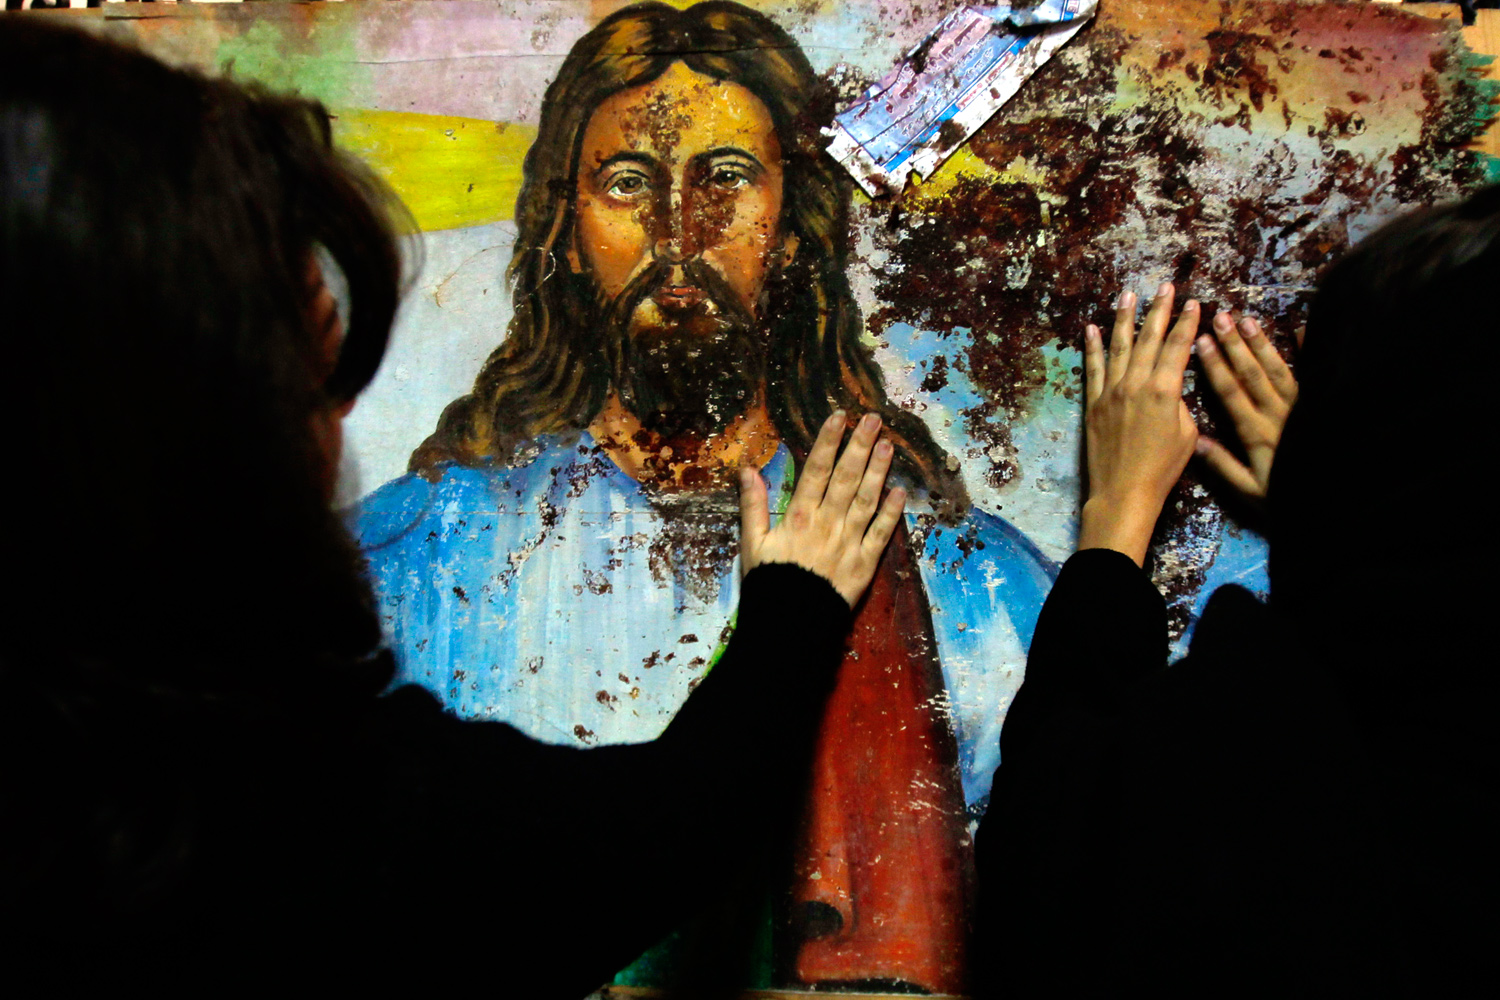 January 2, 2011. Egyptian Christians touch a blood-splattered image of Jesus Christ, inside the Coptic Orthodox church in Alexandria. A bomb killed at least 21 people outside the church early on New Year's Day and blood was splattered onto the image, which is located near the side gate of the church compound, during the bomb attack.